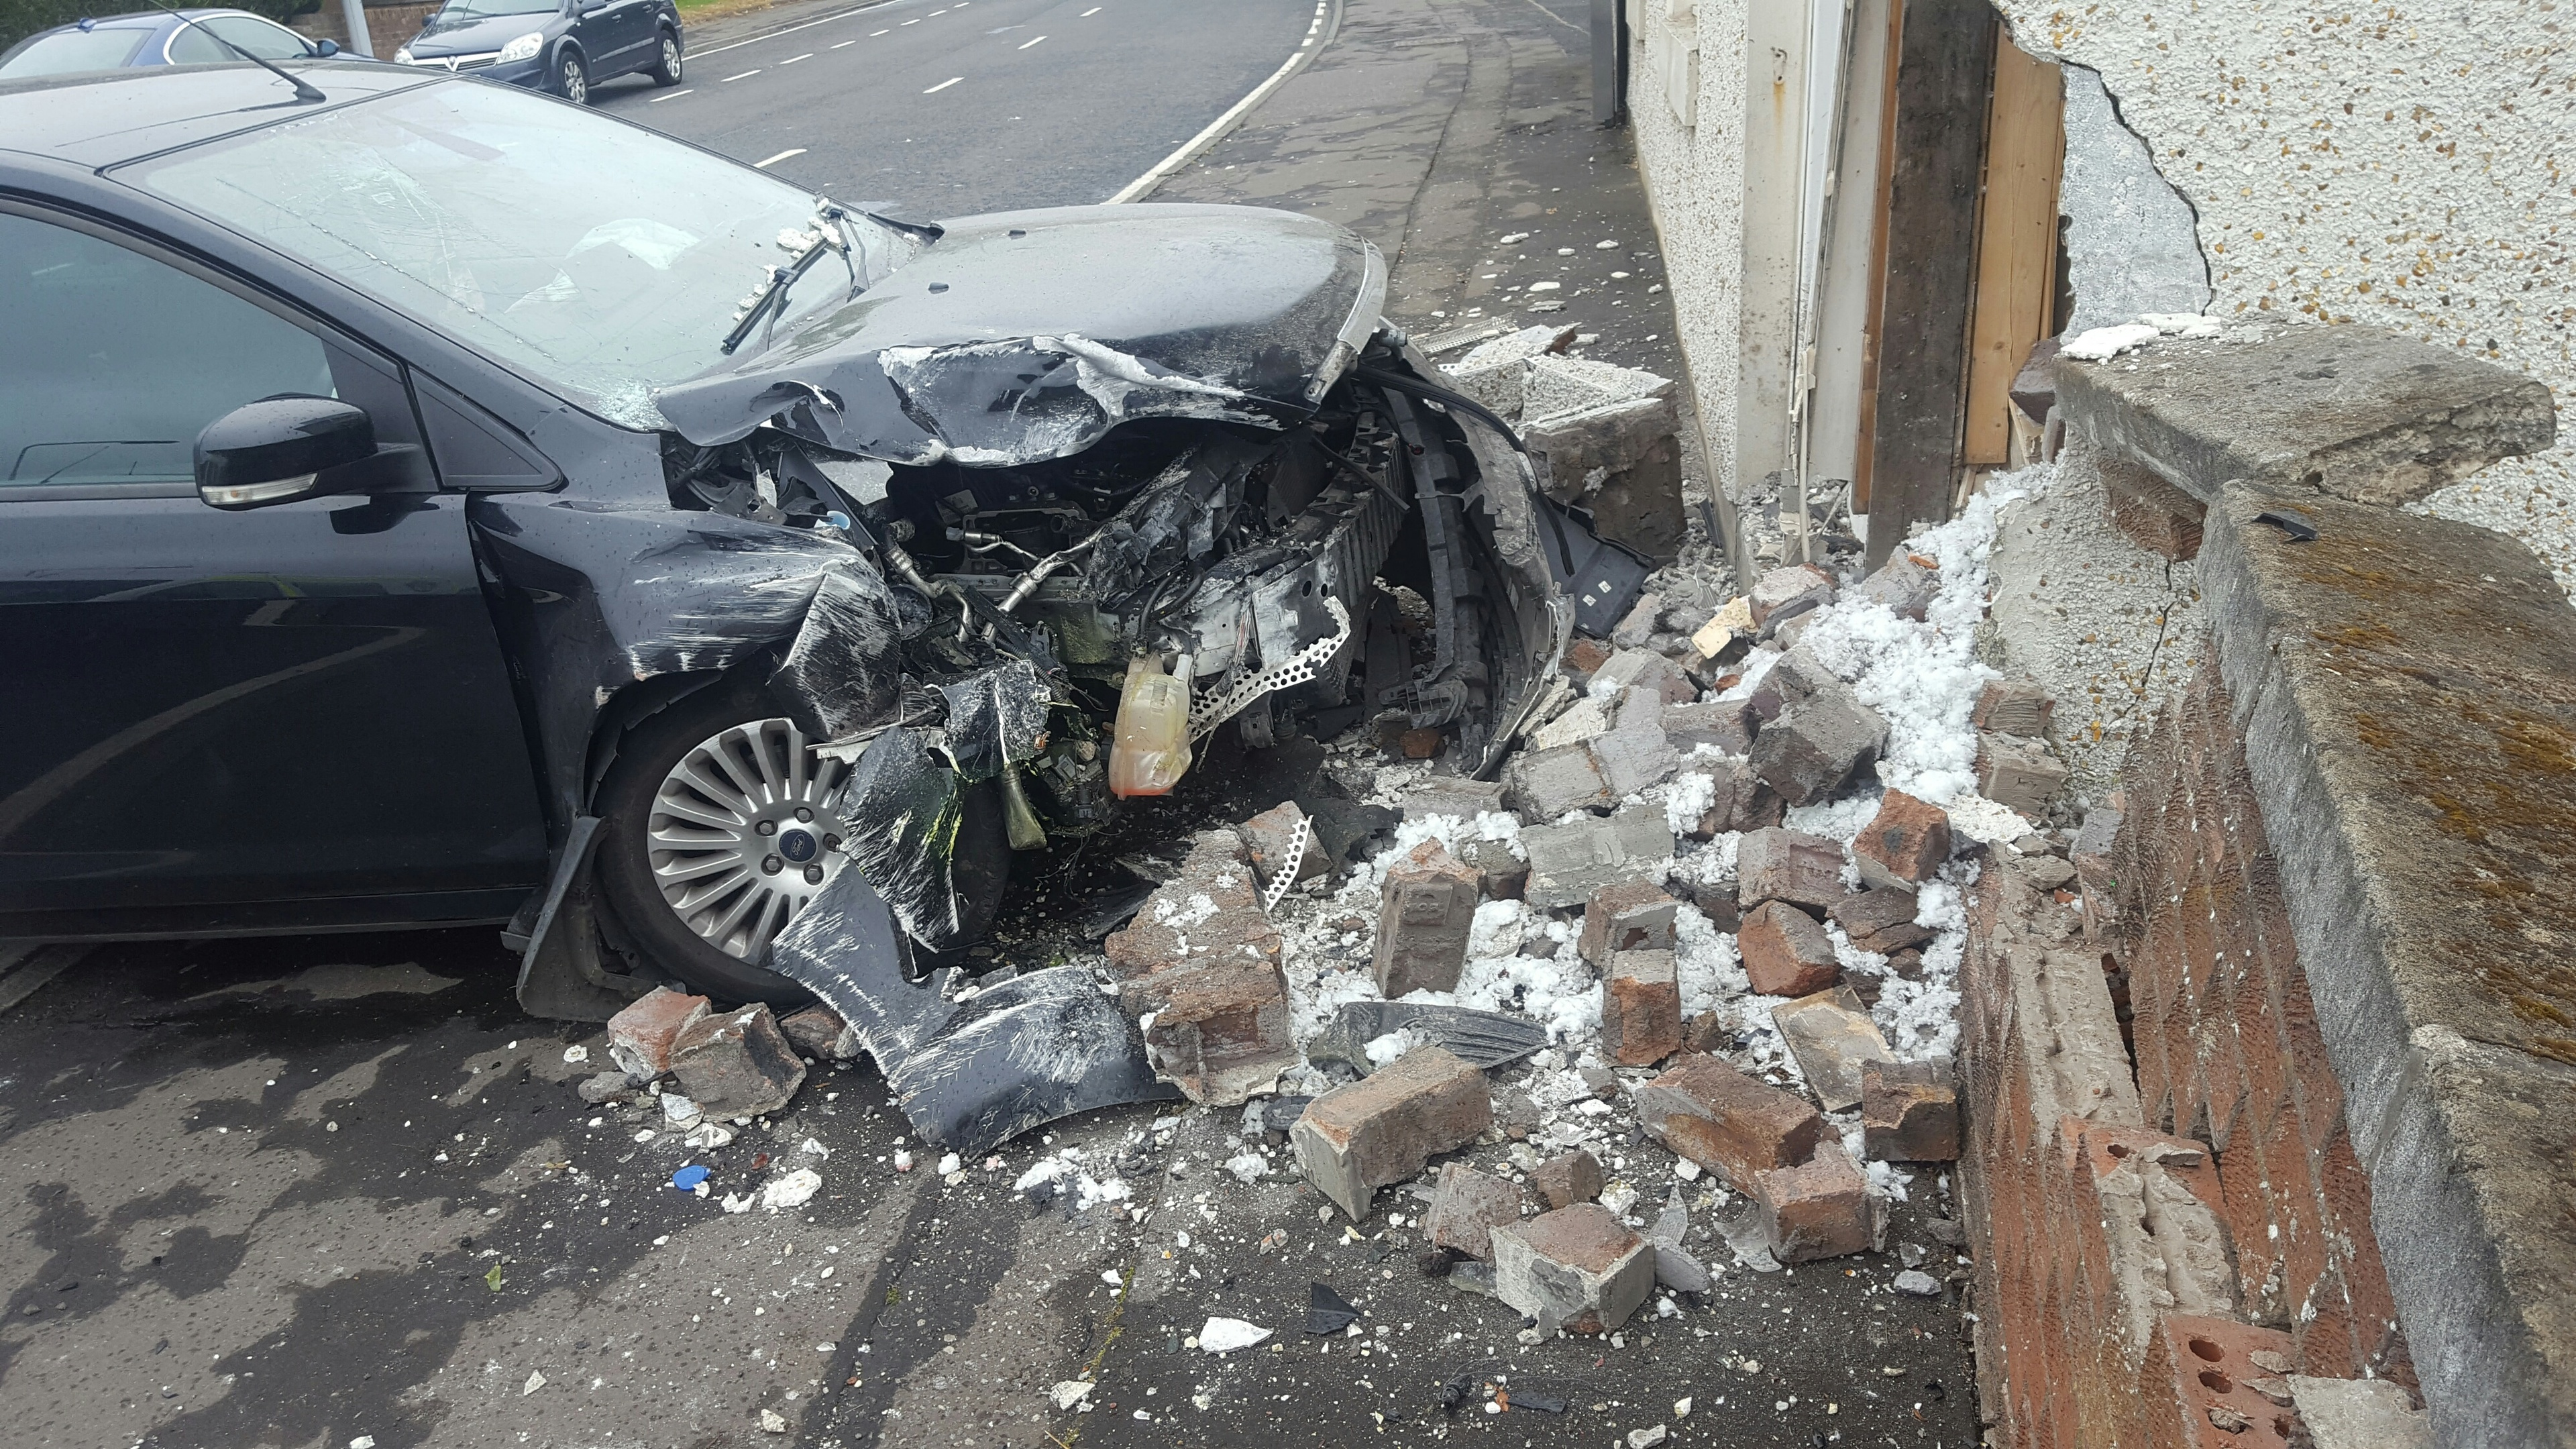 The badly damaged car lies amid the rubble after the impact.